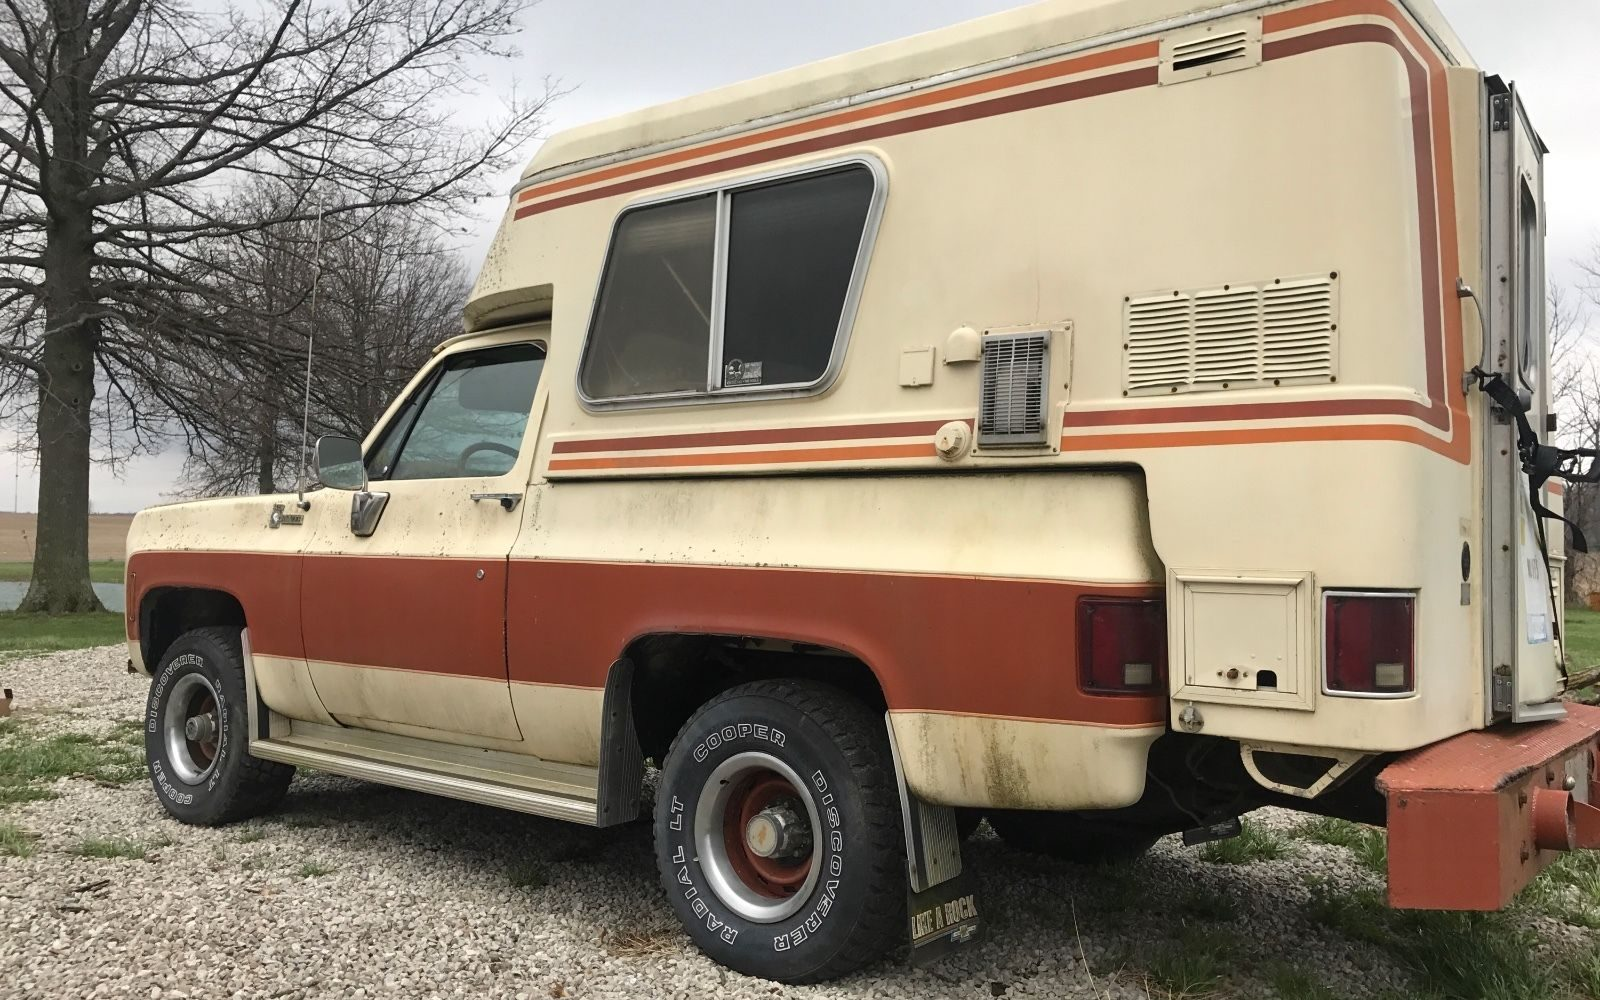 How To Write A Bill Of Sale For A Car >> Topless Outdoorsman: 1976 Chevrolet Blazer Chalet Camper